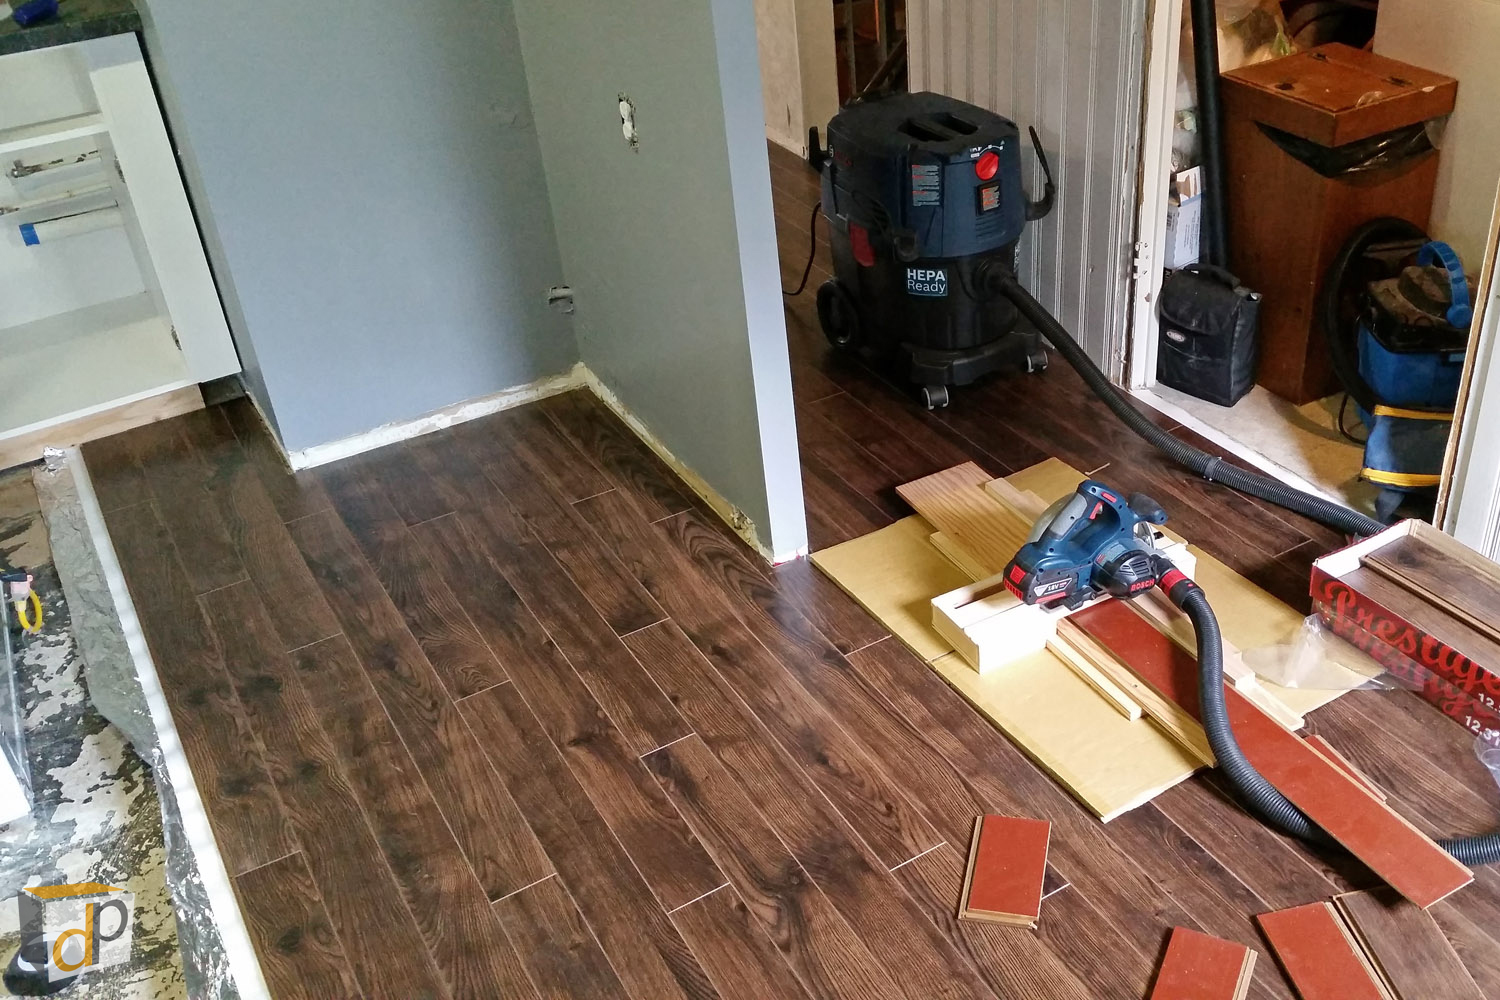 How To Cut Laminate Flooring Dust Free, What Saw Blade To Use For Cutting Laminate Flooring